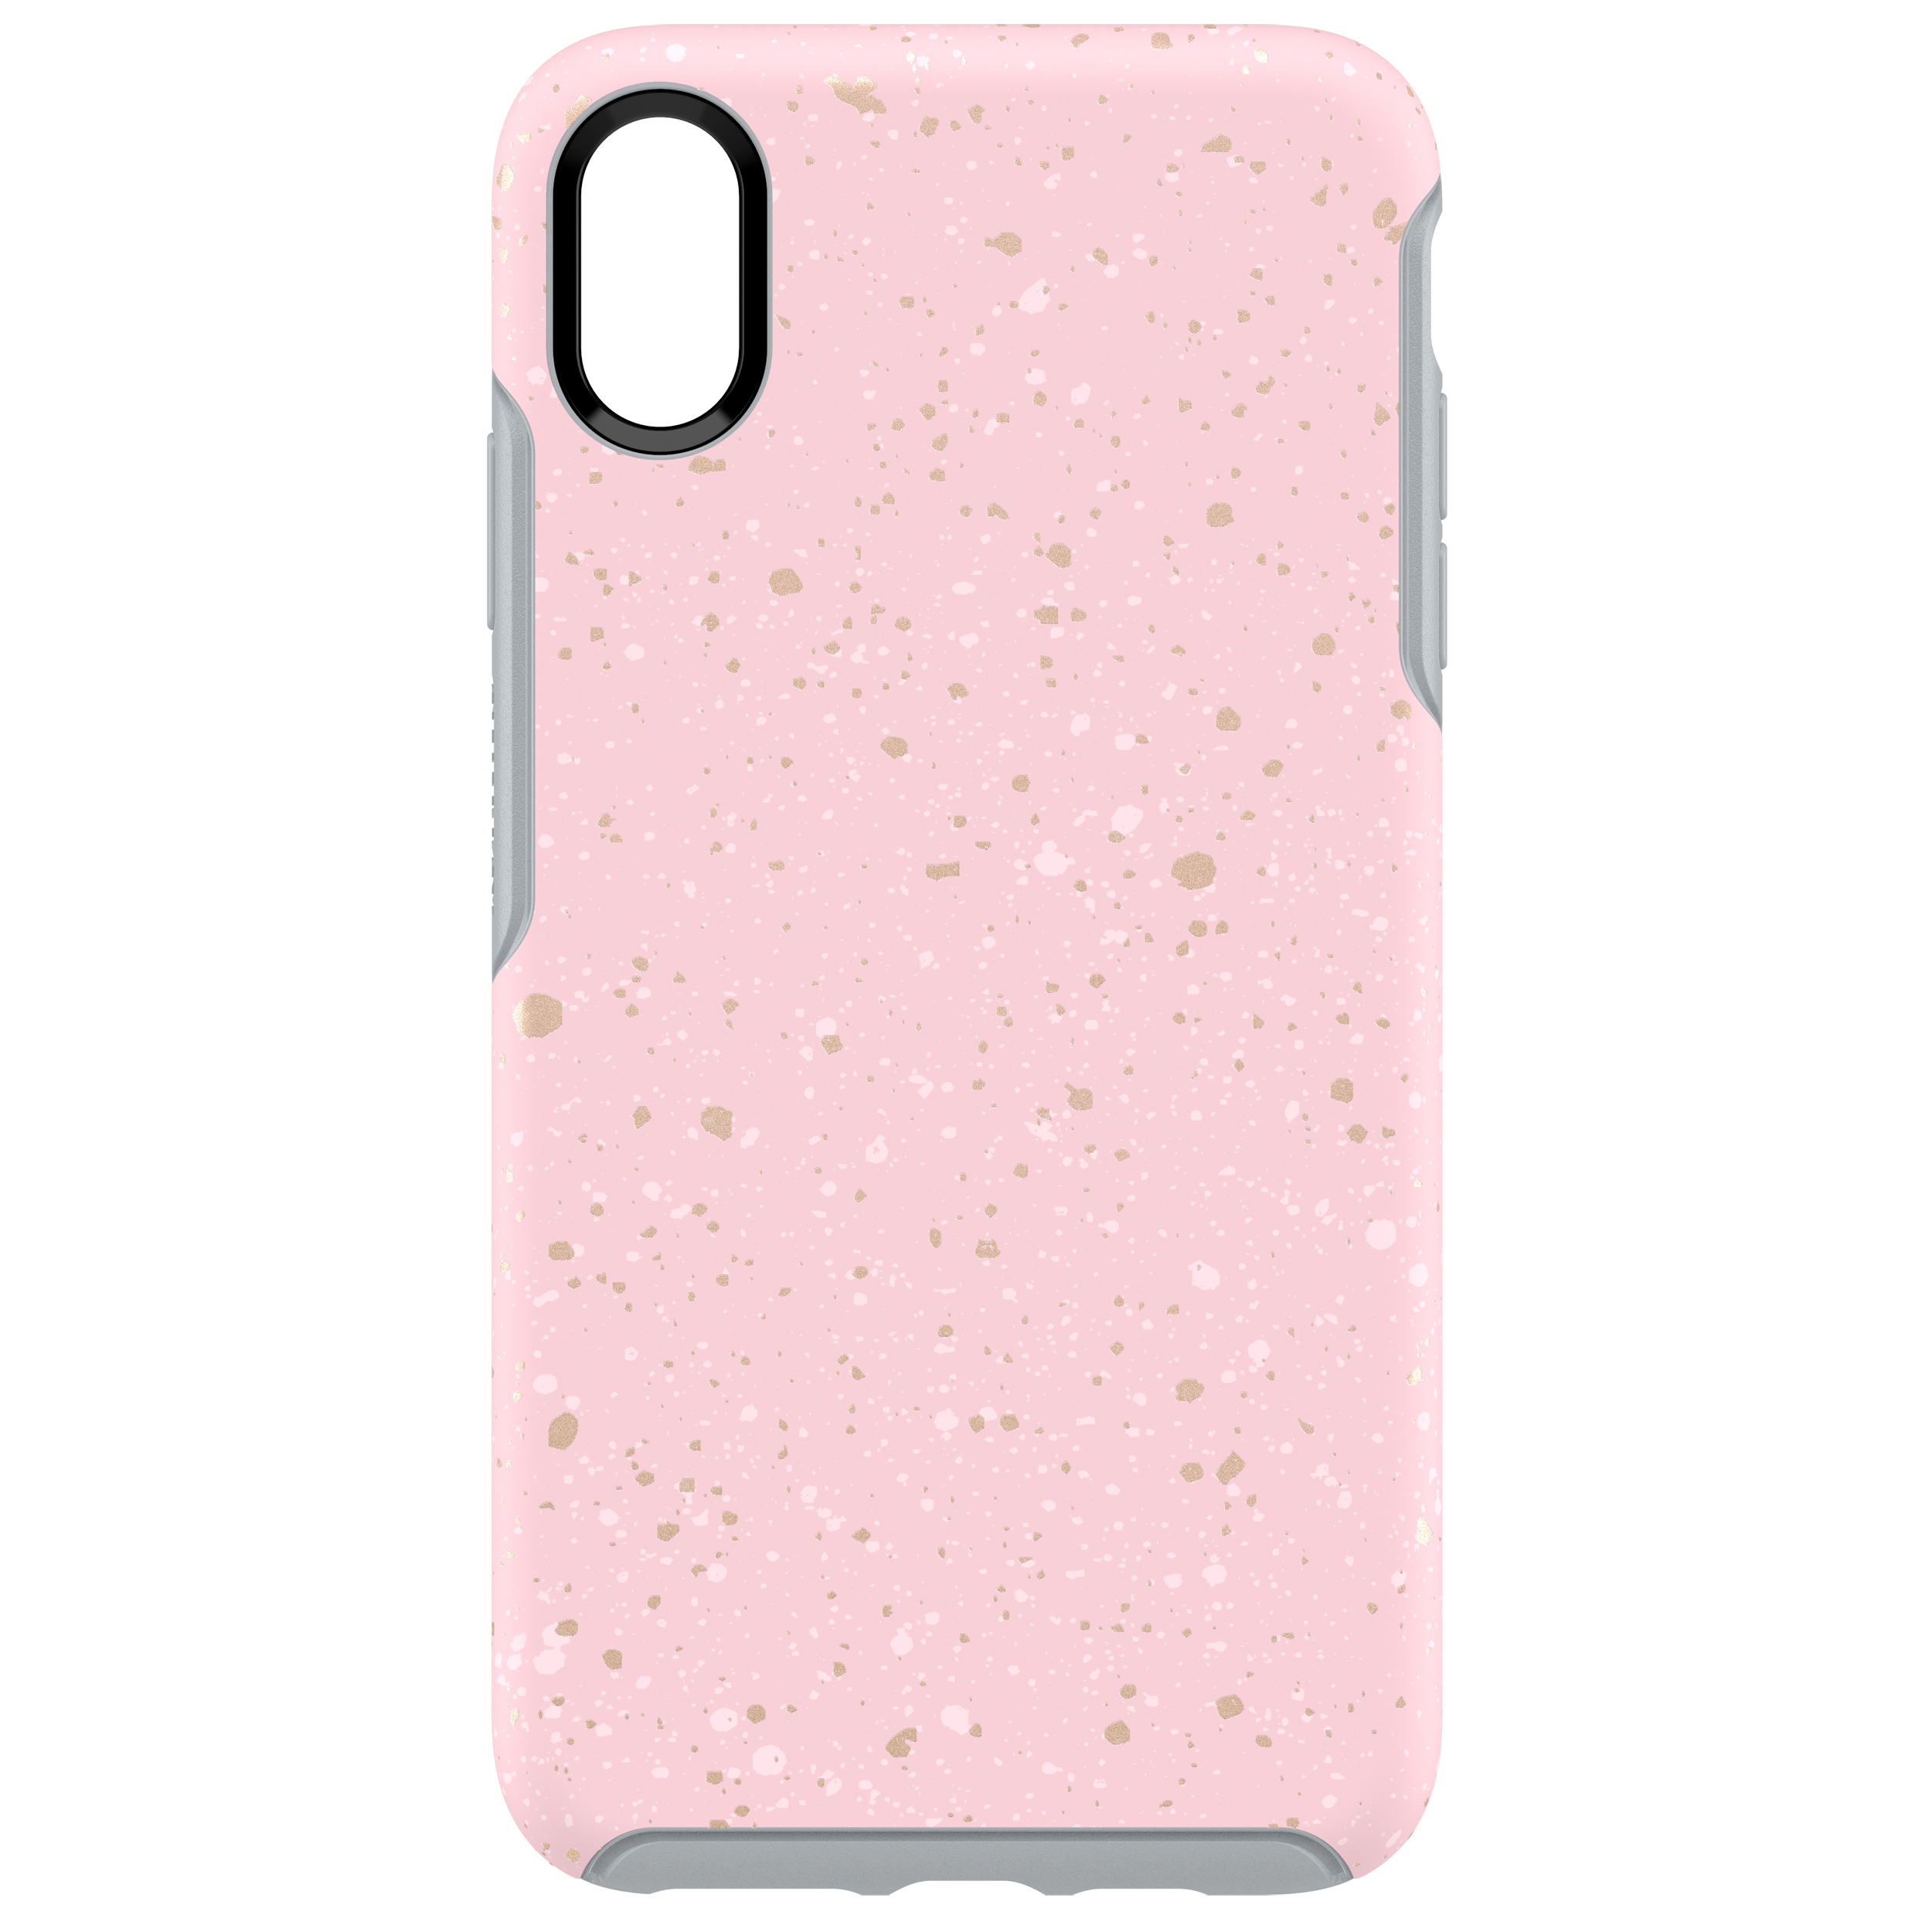 watch 3aba6 eee02 Otterbox Symmetry Series Case for iPhone Xs Max, On Fleck